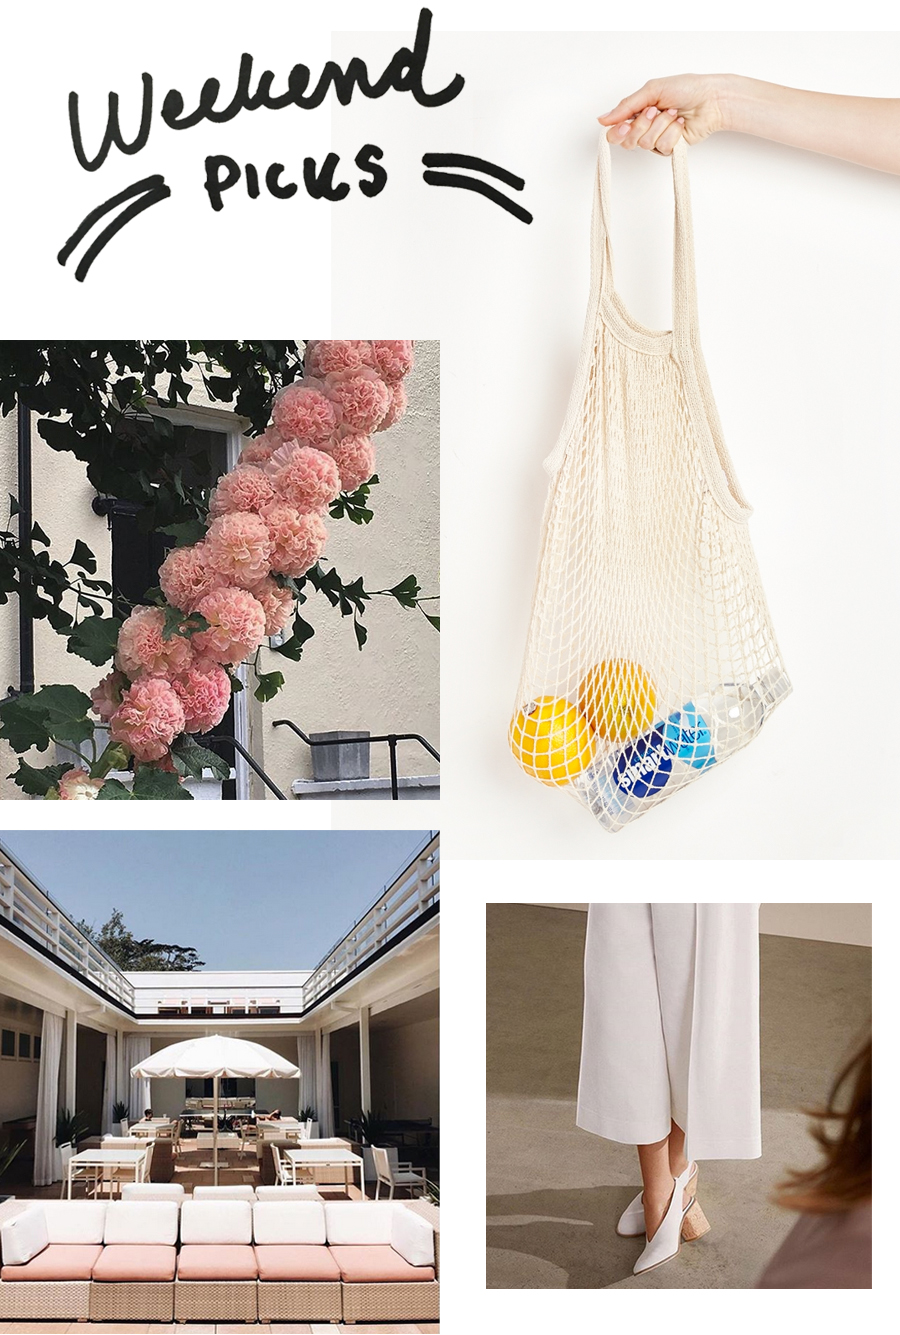 weekend picks santa barbara four seasons clo instagram